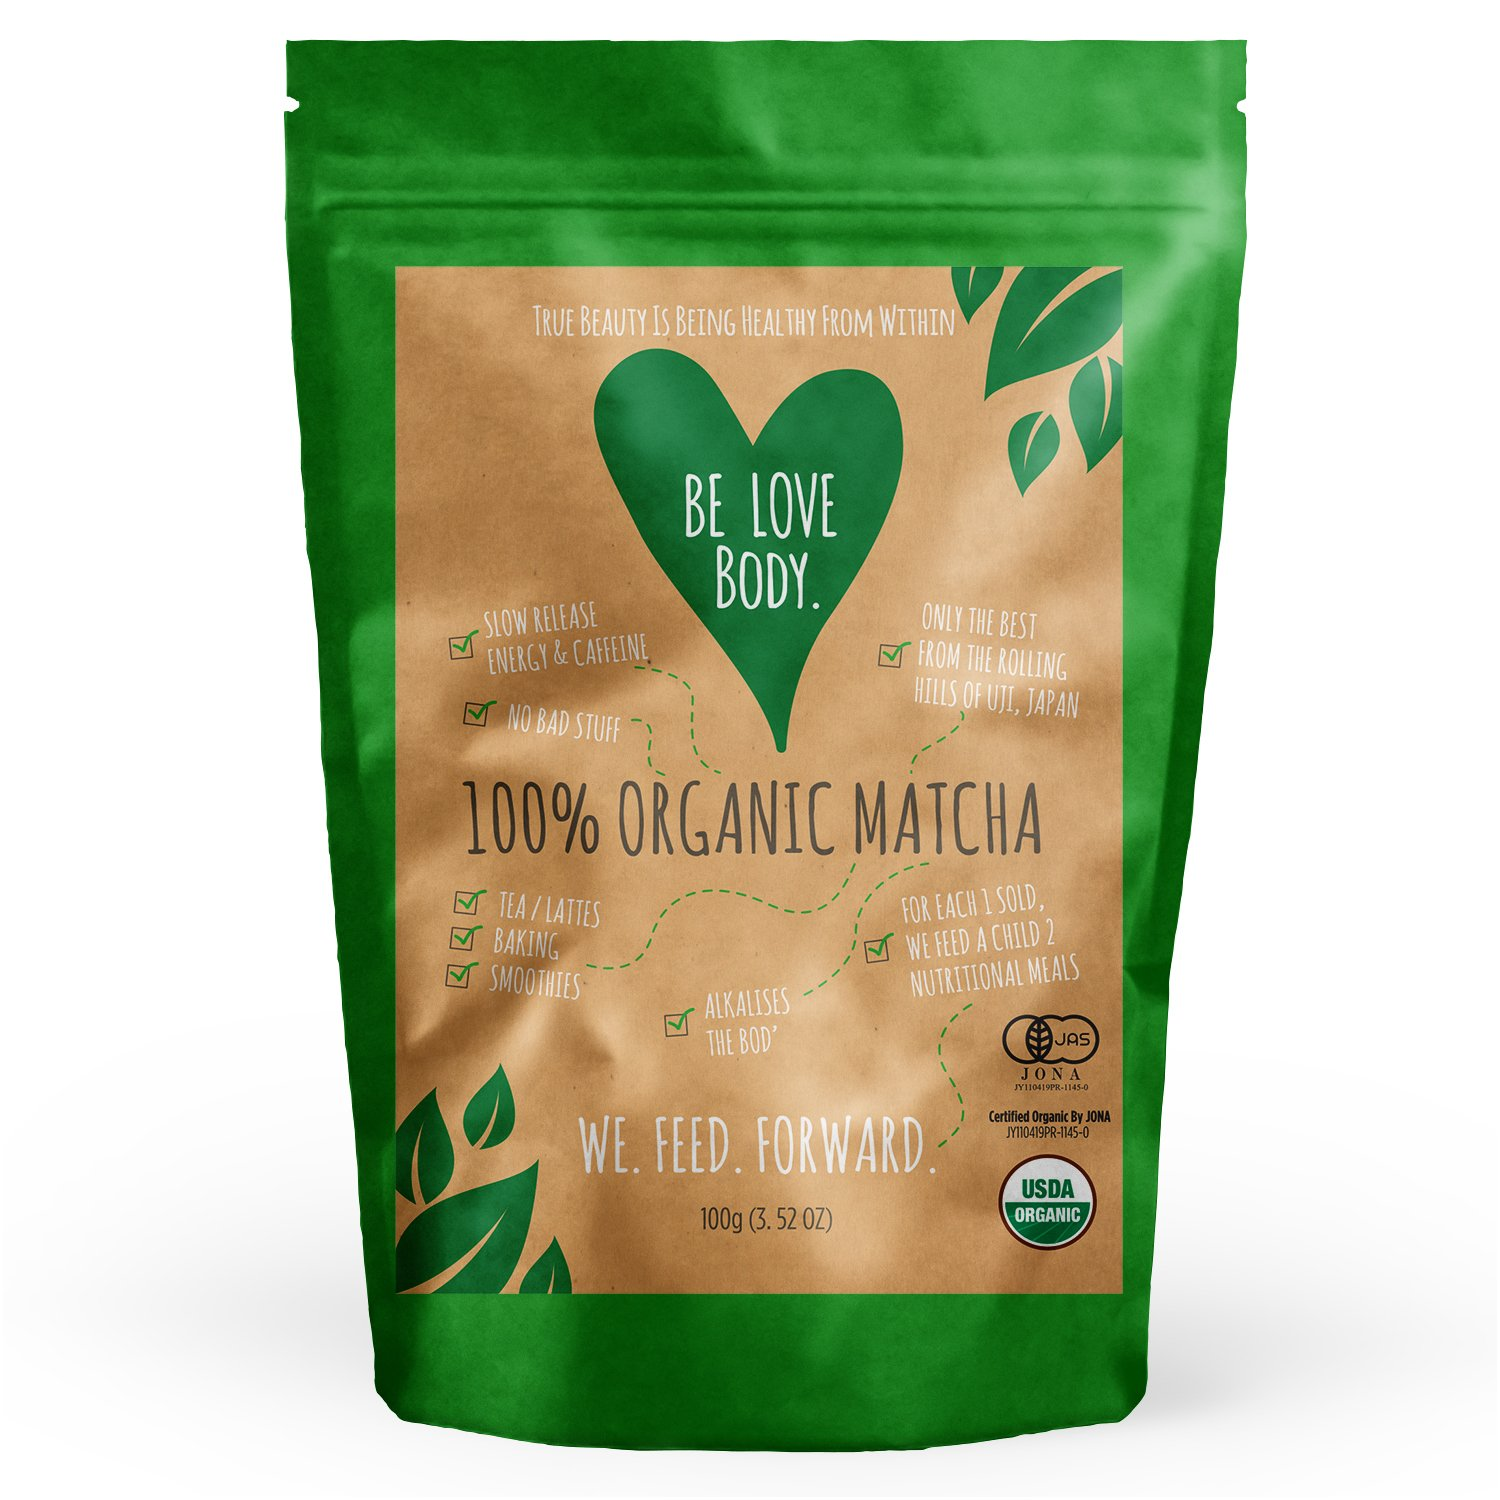 Be Love Body - Organic Matcha Green Tea Powder For Teas, Lattes, Baking & Smoothies (Or Any WayThat Makes You Happy) - For A Healthy & Sustained Energy Release Throughout The Day, 100g Pouch by Be Love Body